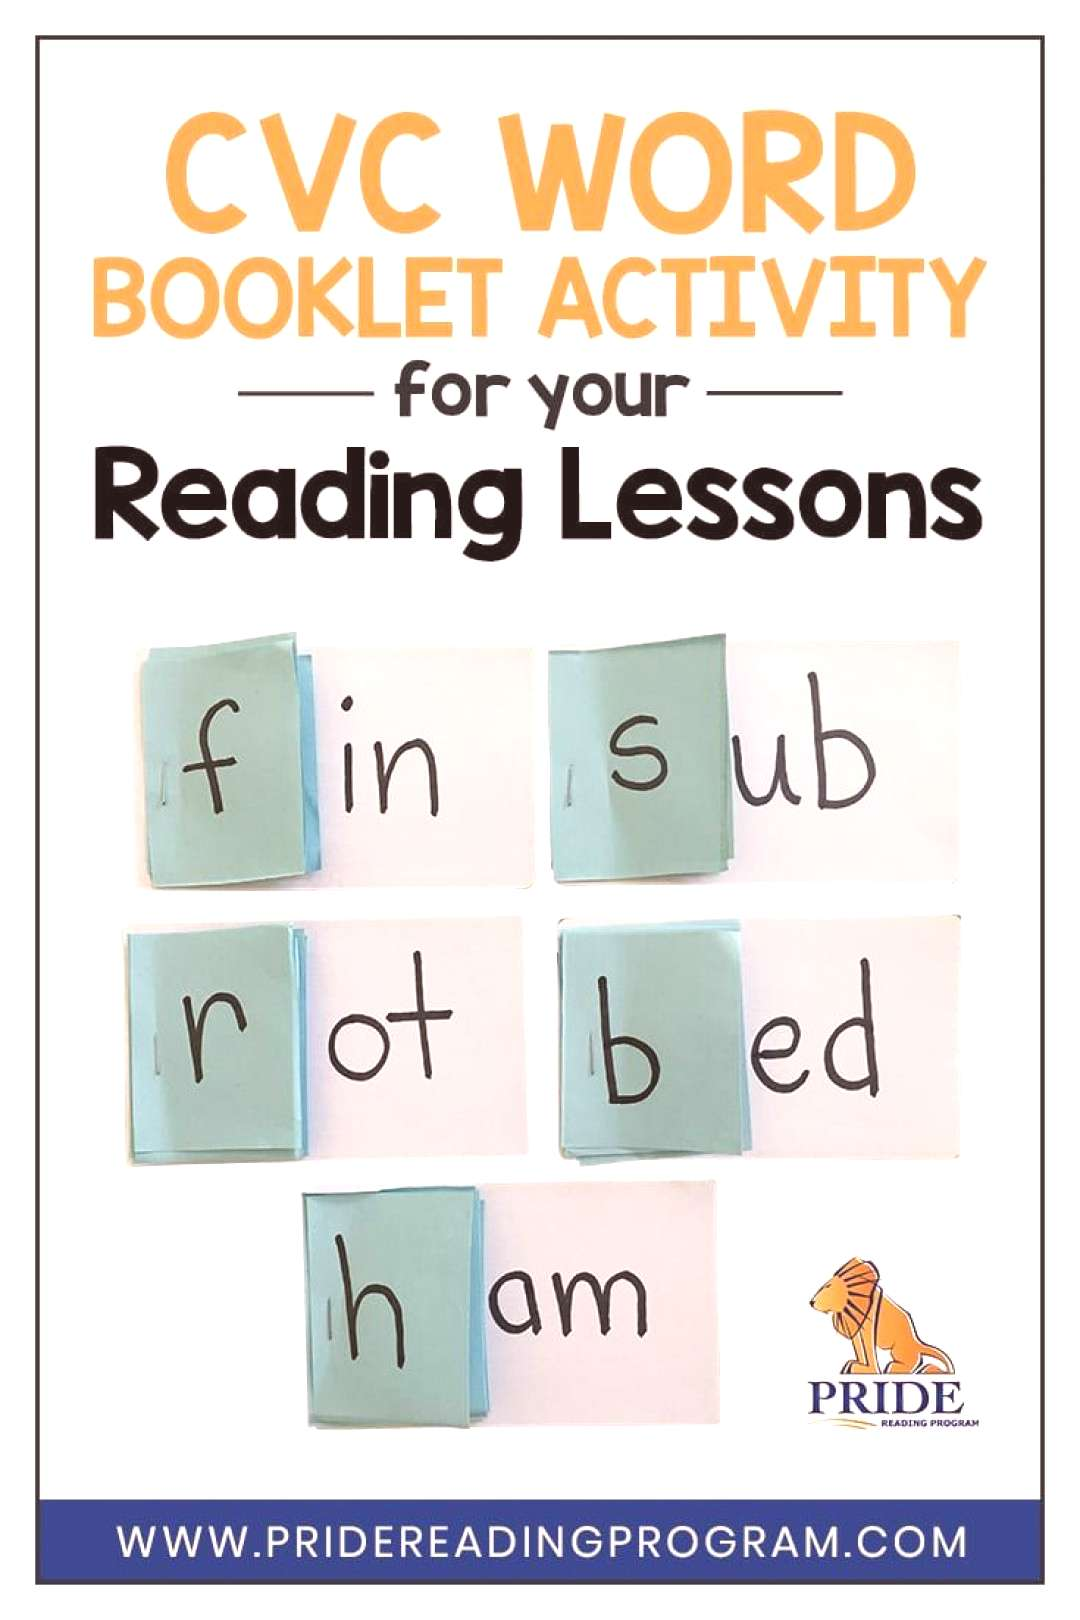 DIY cvc Word Booklet Activity for your Reading Lessons This DIY cvc word booklet activity is so eas